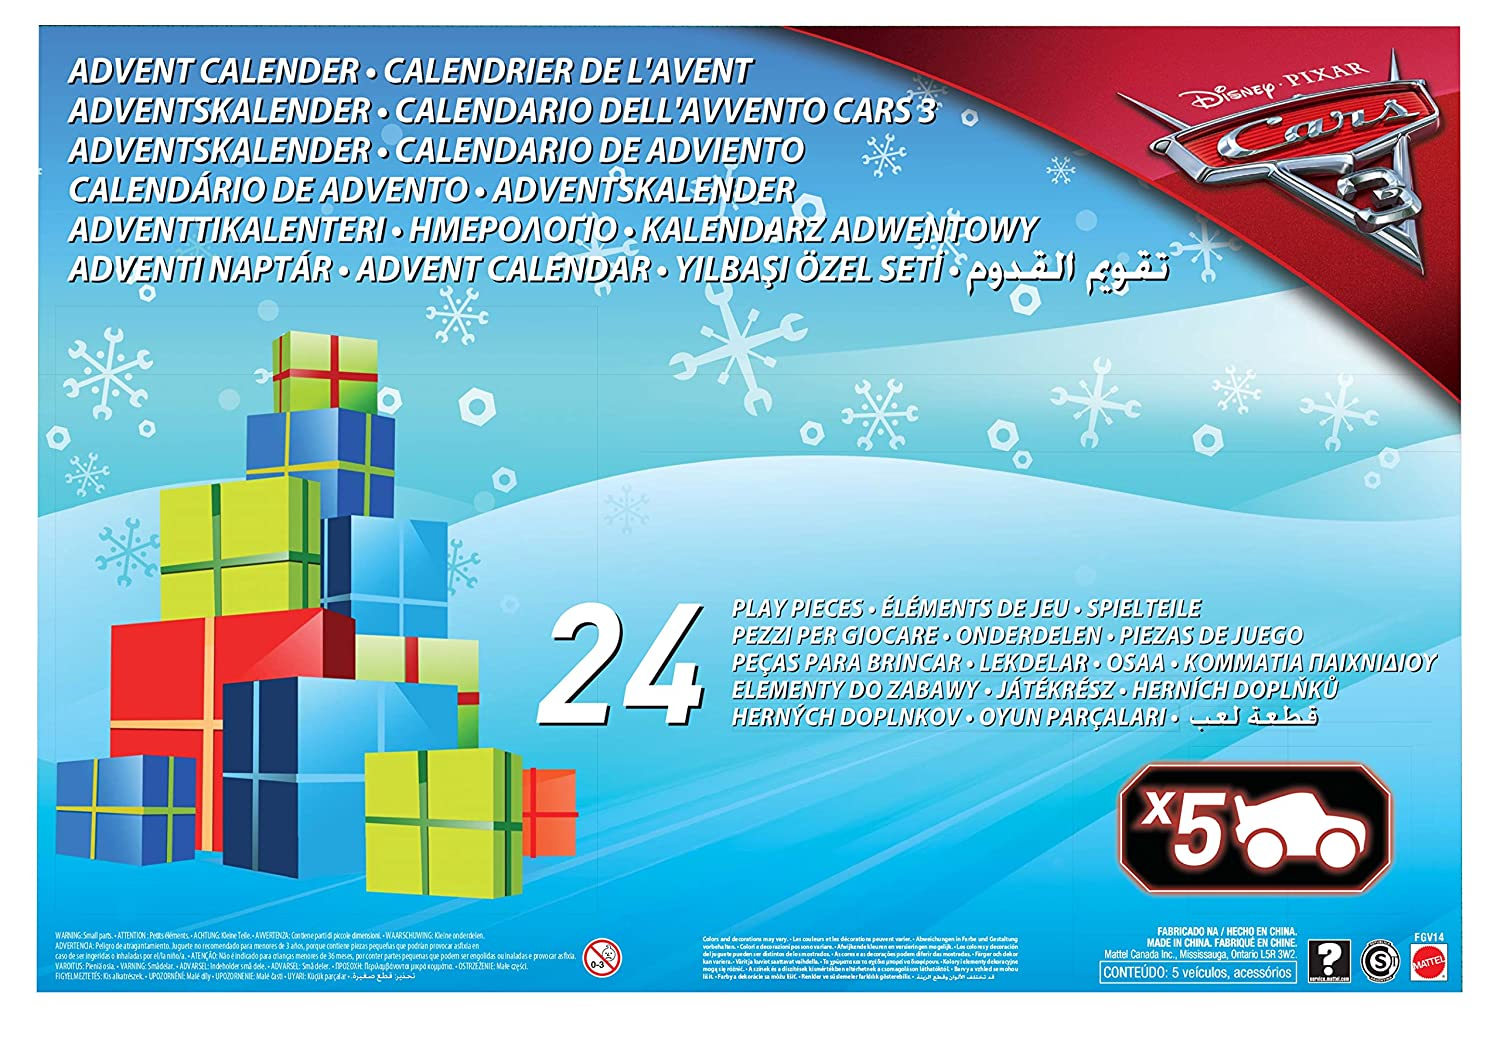 color fitness naptár Disney Cars FGV14 Cars 3 Advent Calendar: Amazon.co.uk: Toys & Games color fitness naptár